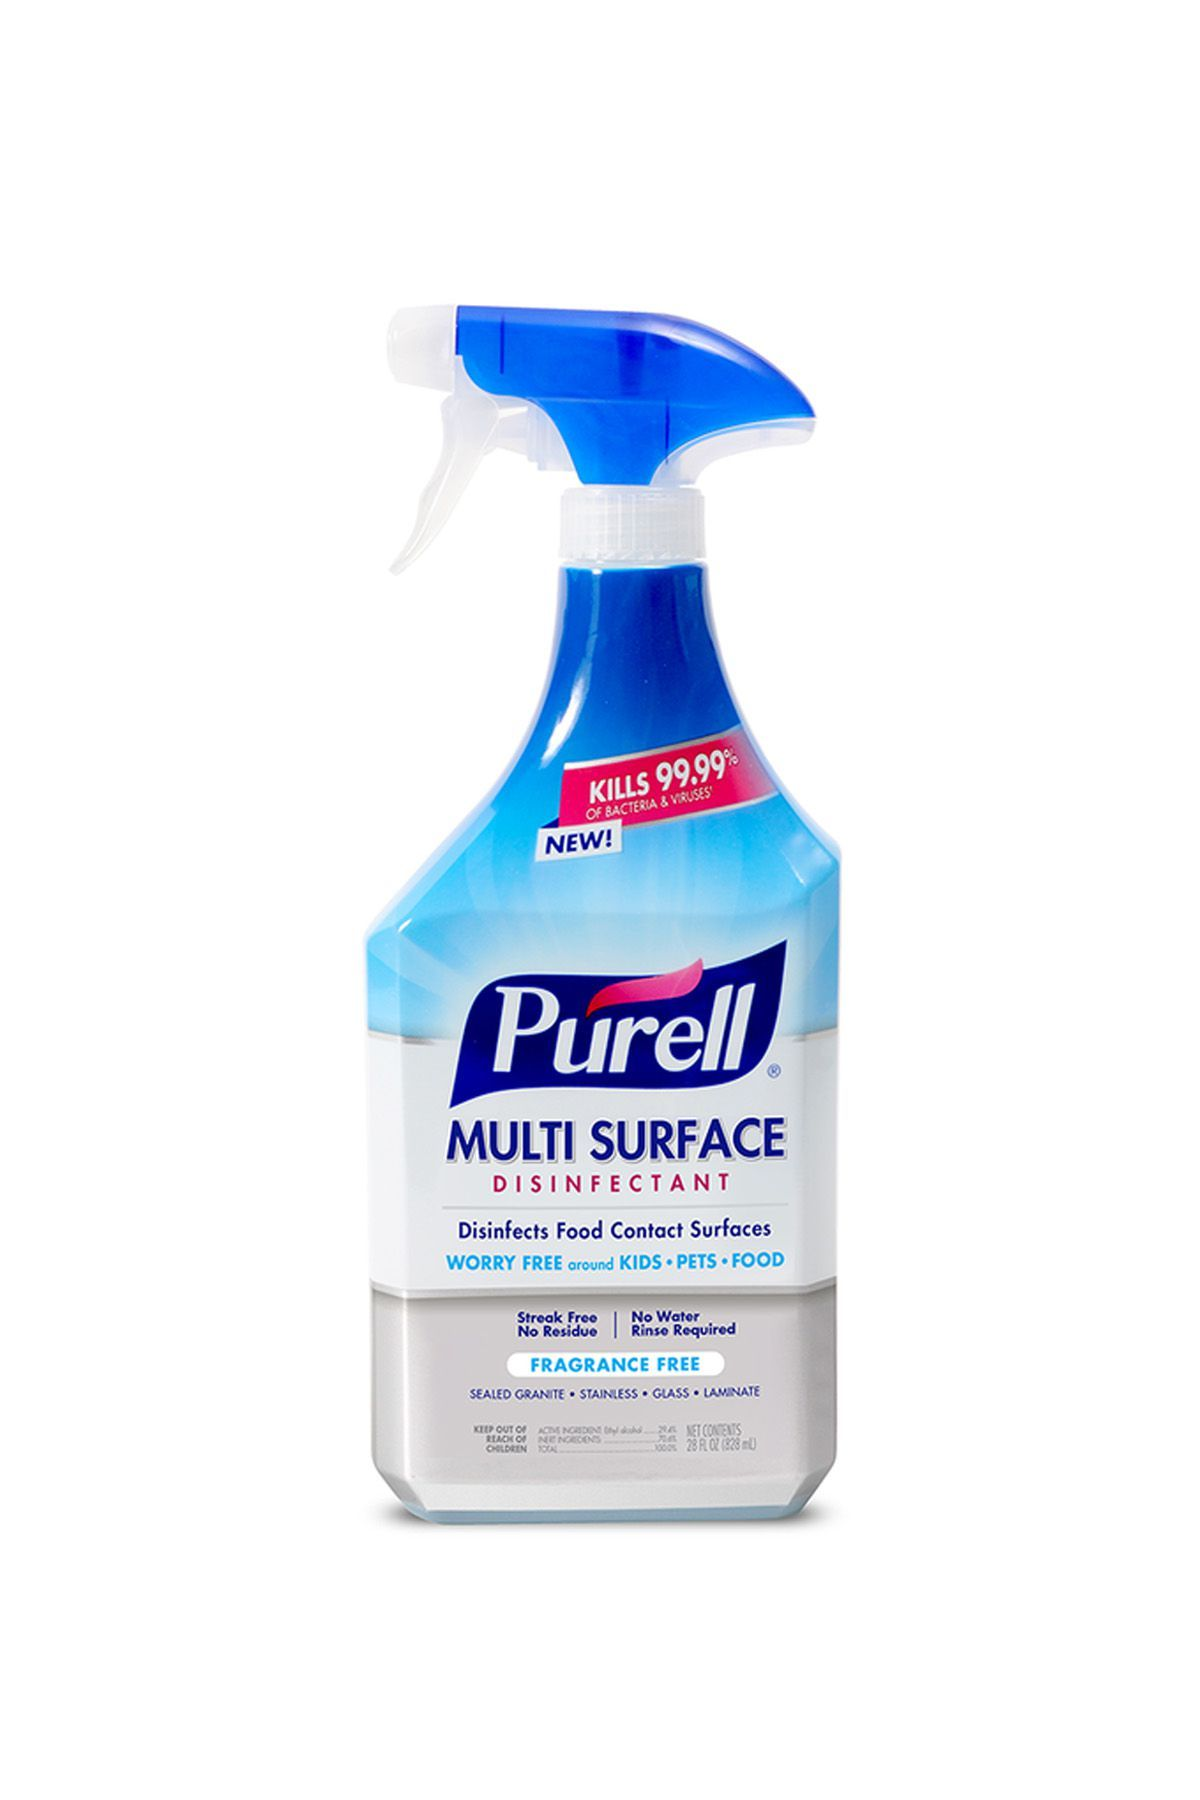 Cleaning experts say your allpurpose cleaner might not